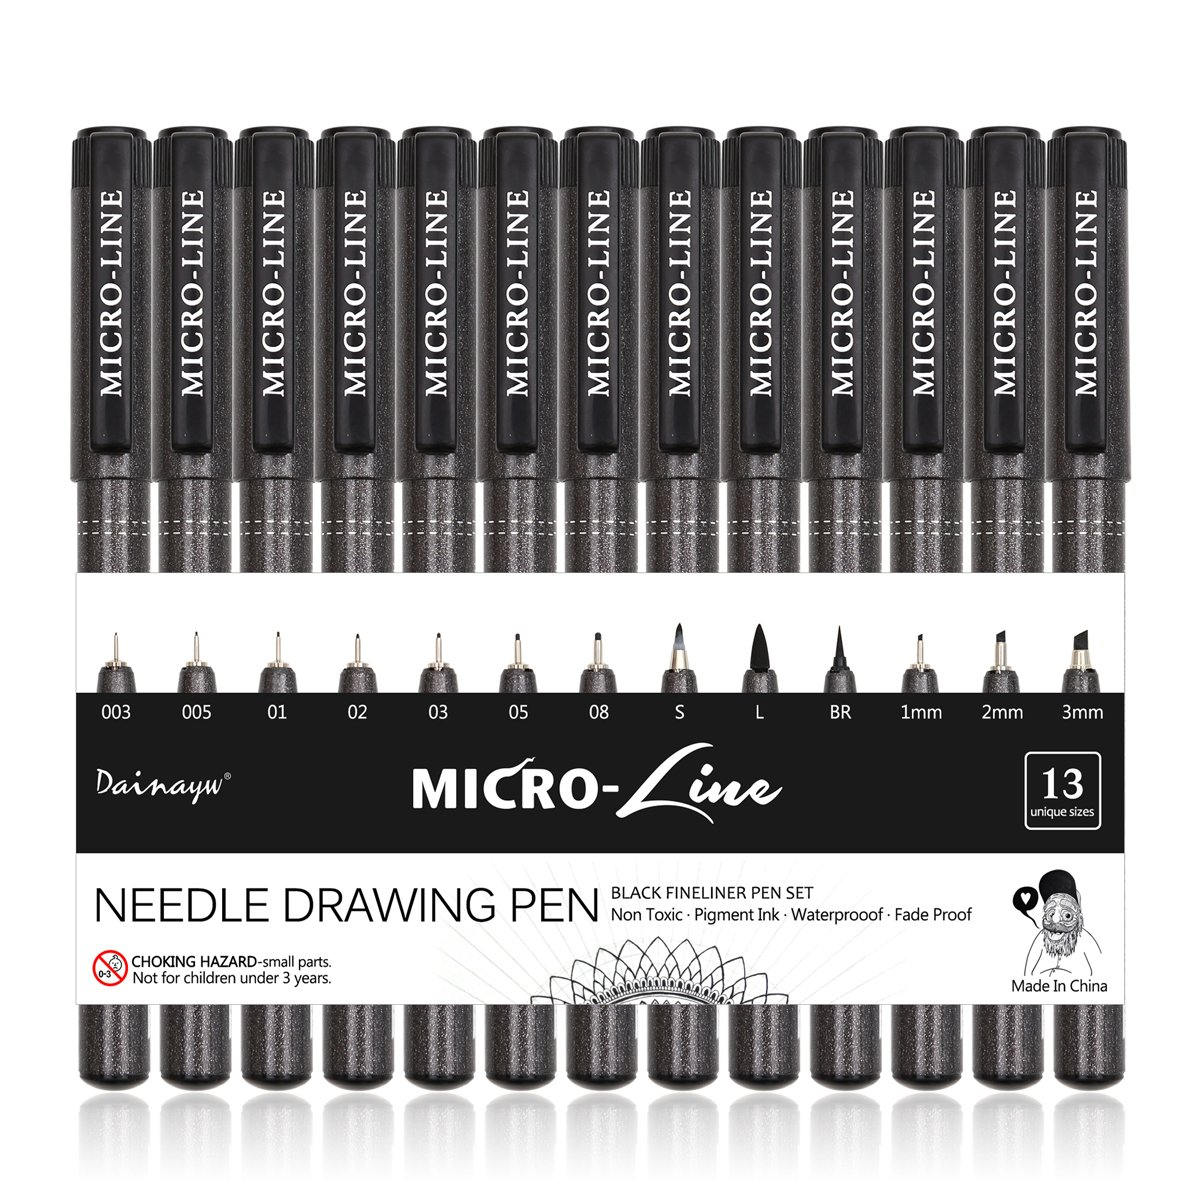 Dainayw Black Micro-Line Ink Pens, Fineliner, Multiliner, Waterproof Archival Ink, Calligraphy Brush Pens, Micro-Pen For Artist Illustration, Technical Drawing, Office Documents, Scrapbooking, 13 Pack